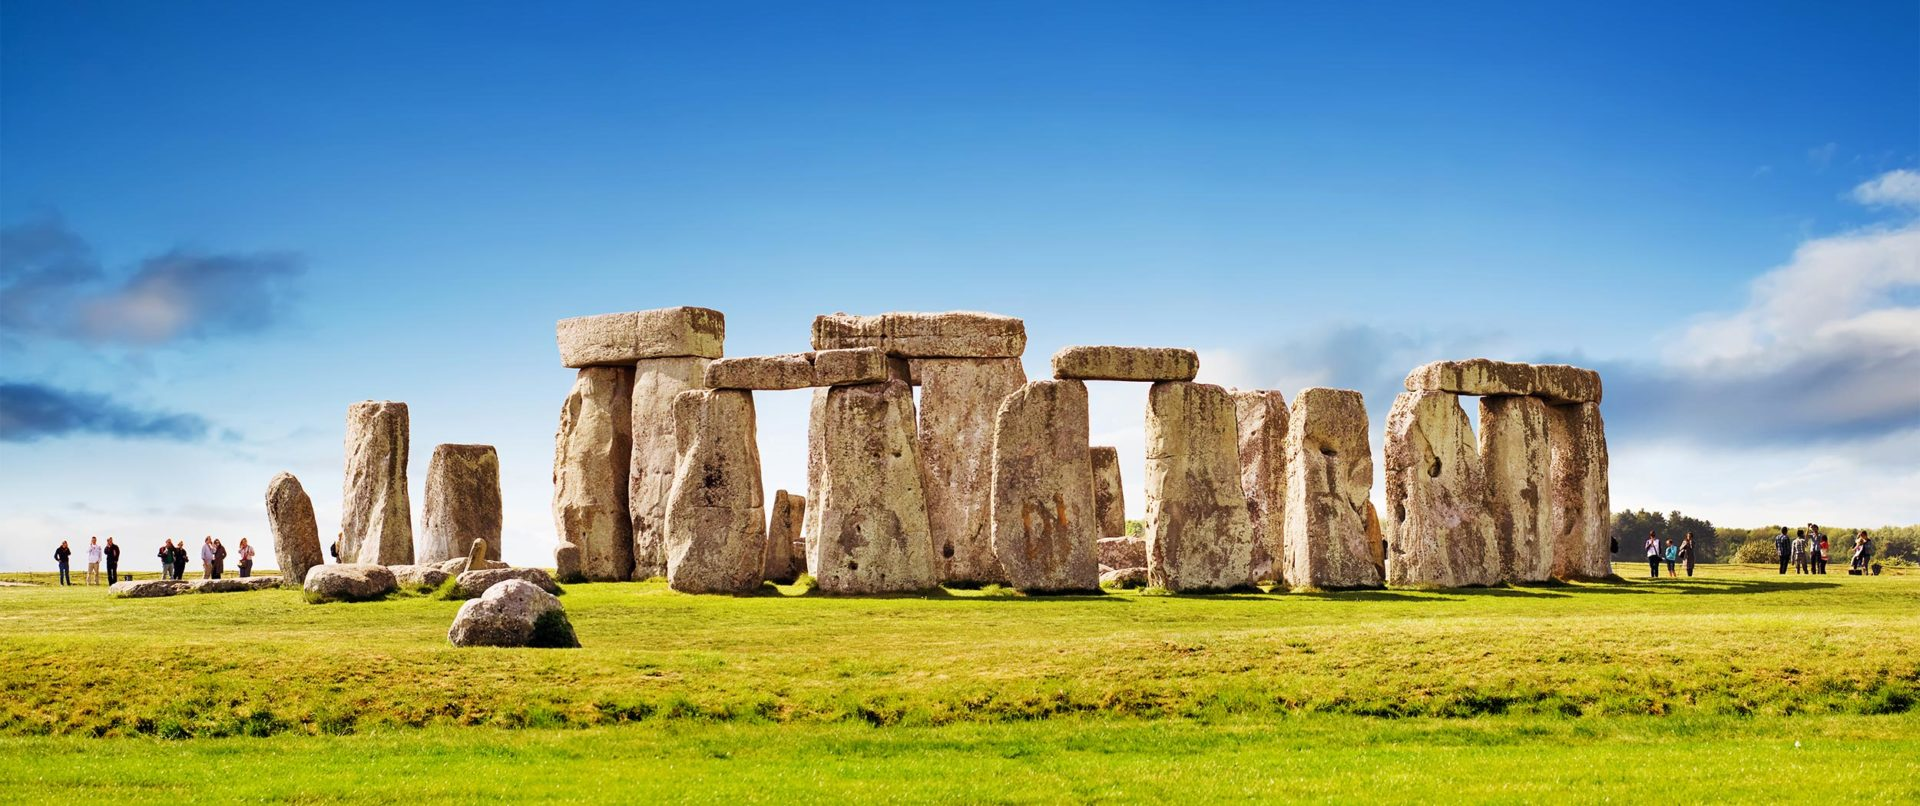 stonehenge-and-bath-family-tour--